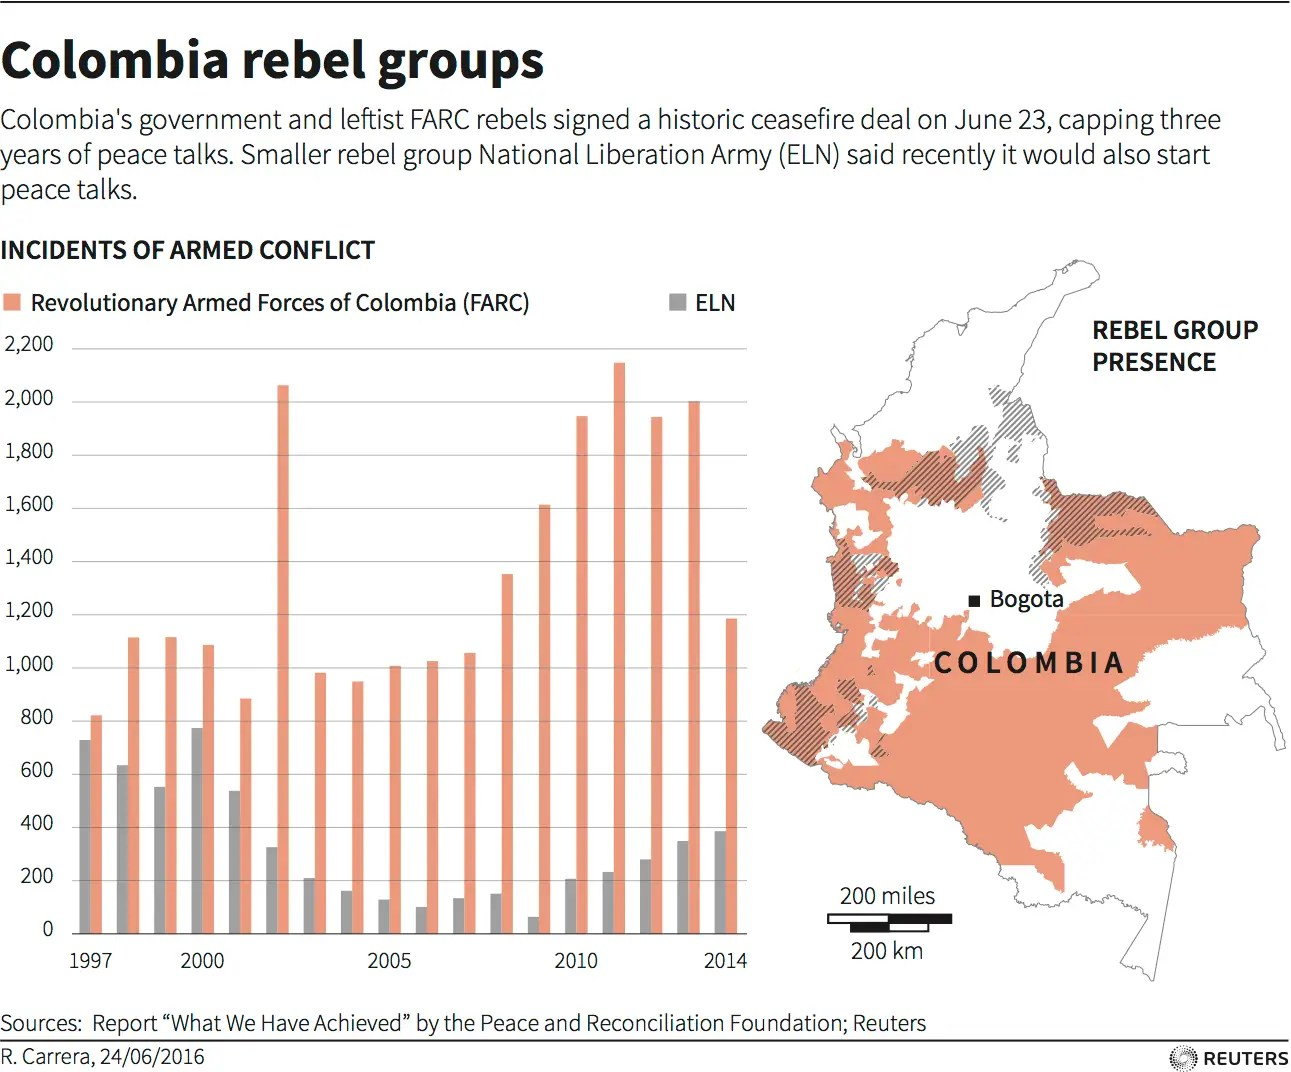 Colombia rebel groups ceasefire FARC June 2016